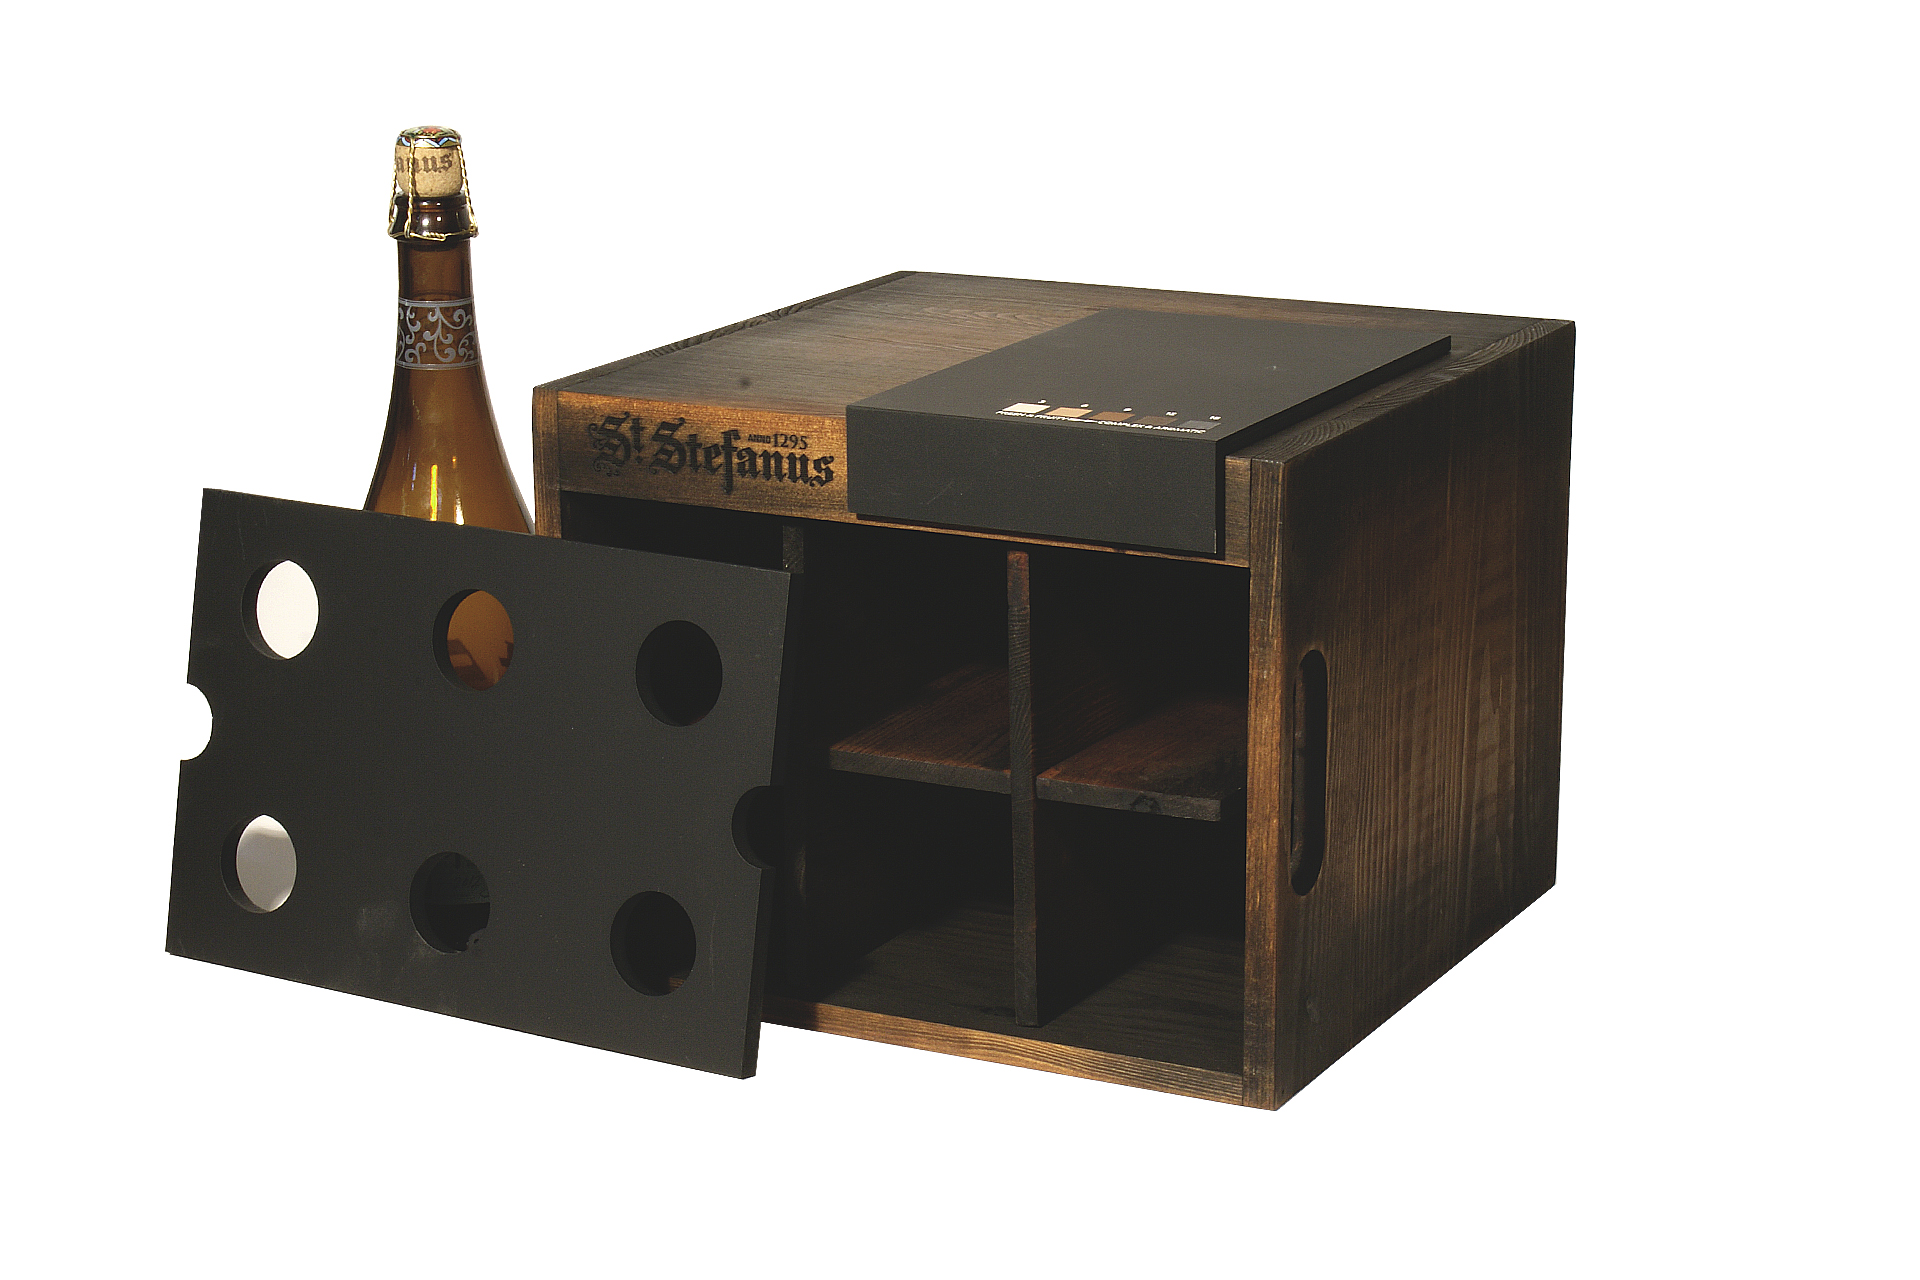 custom made crate in wooden aged finish for point of sale merchandising